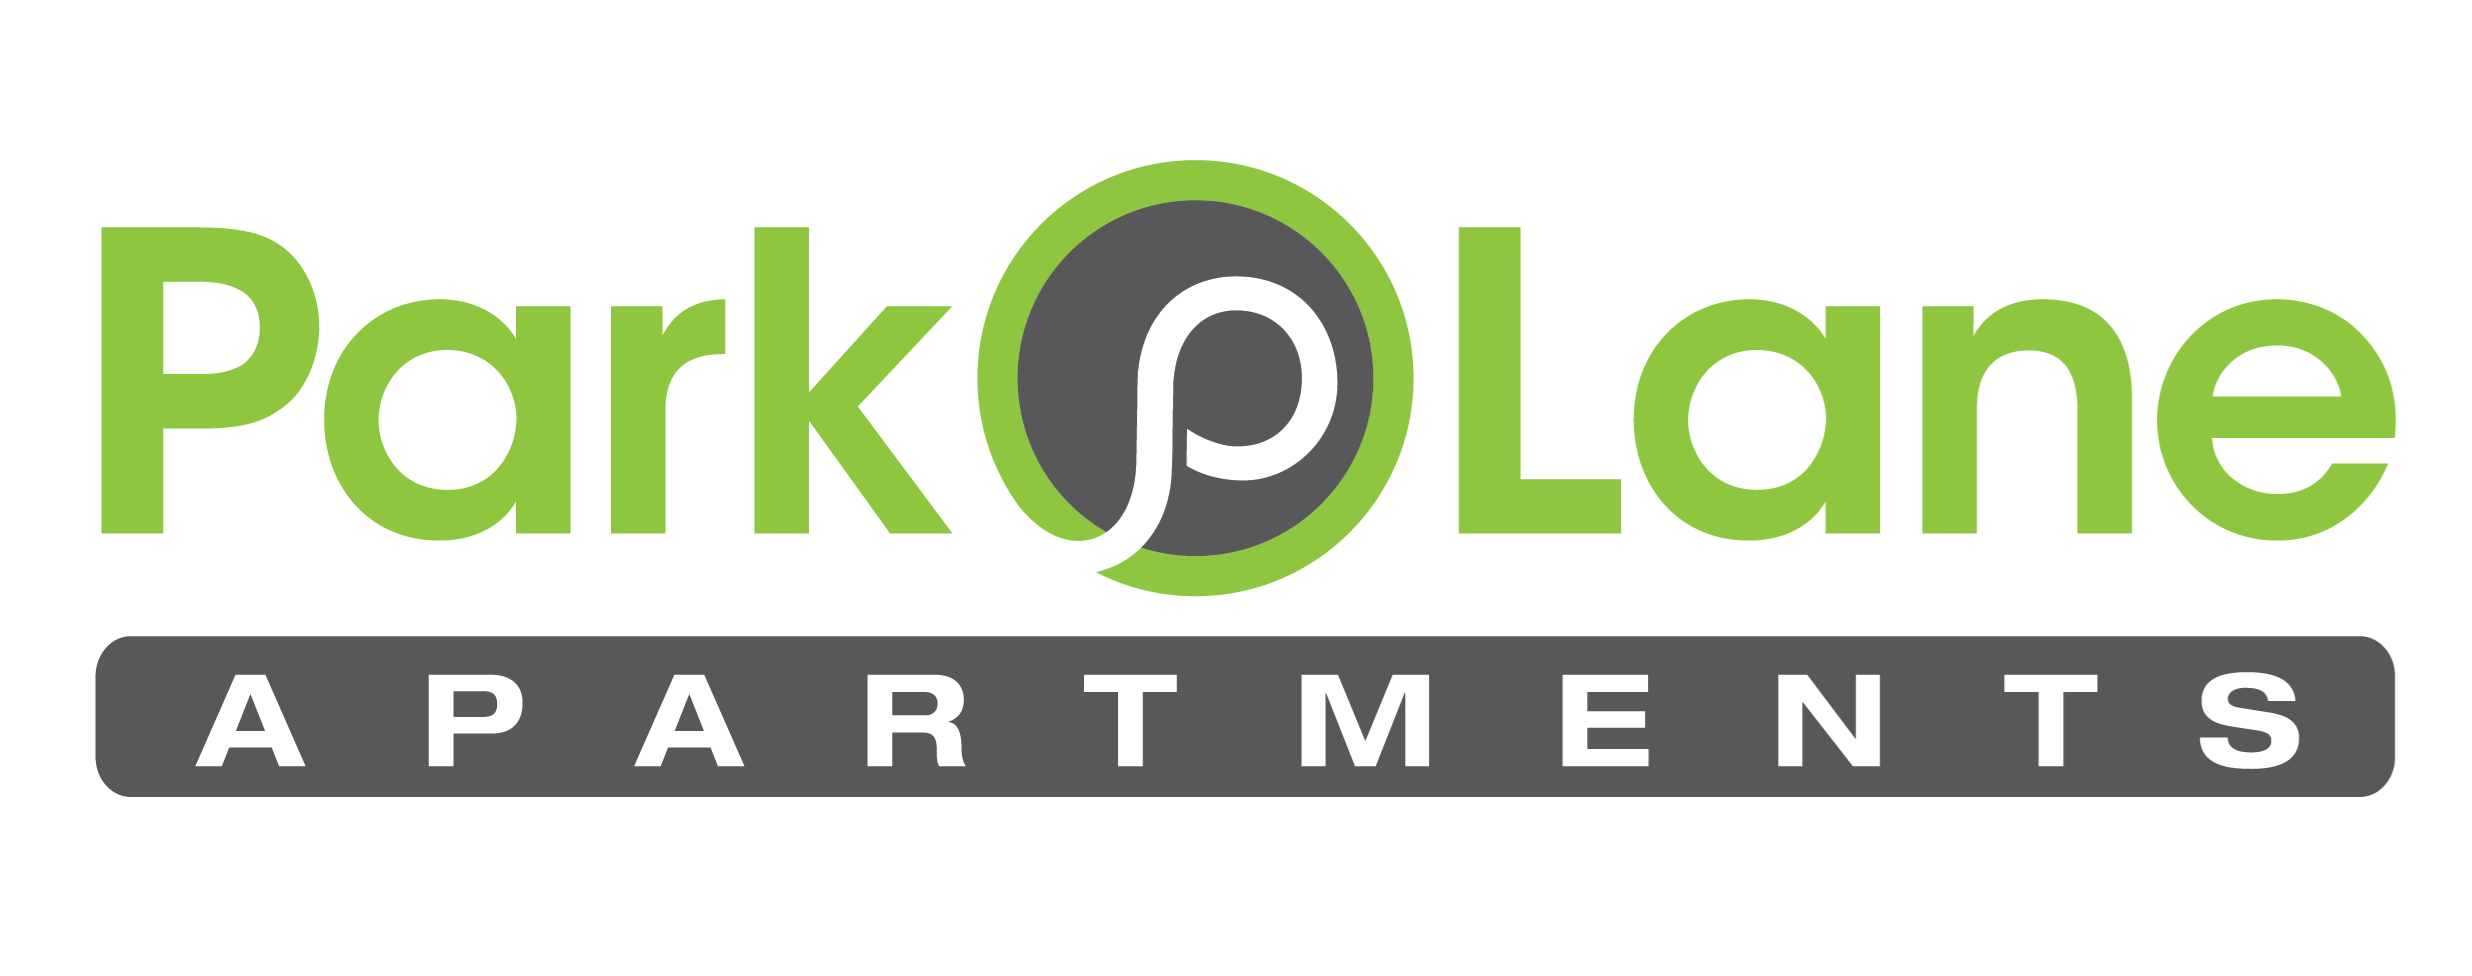 Park Lane Apartments Logo, Southfield, MI 48033